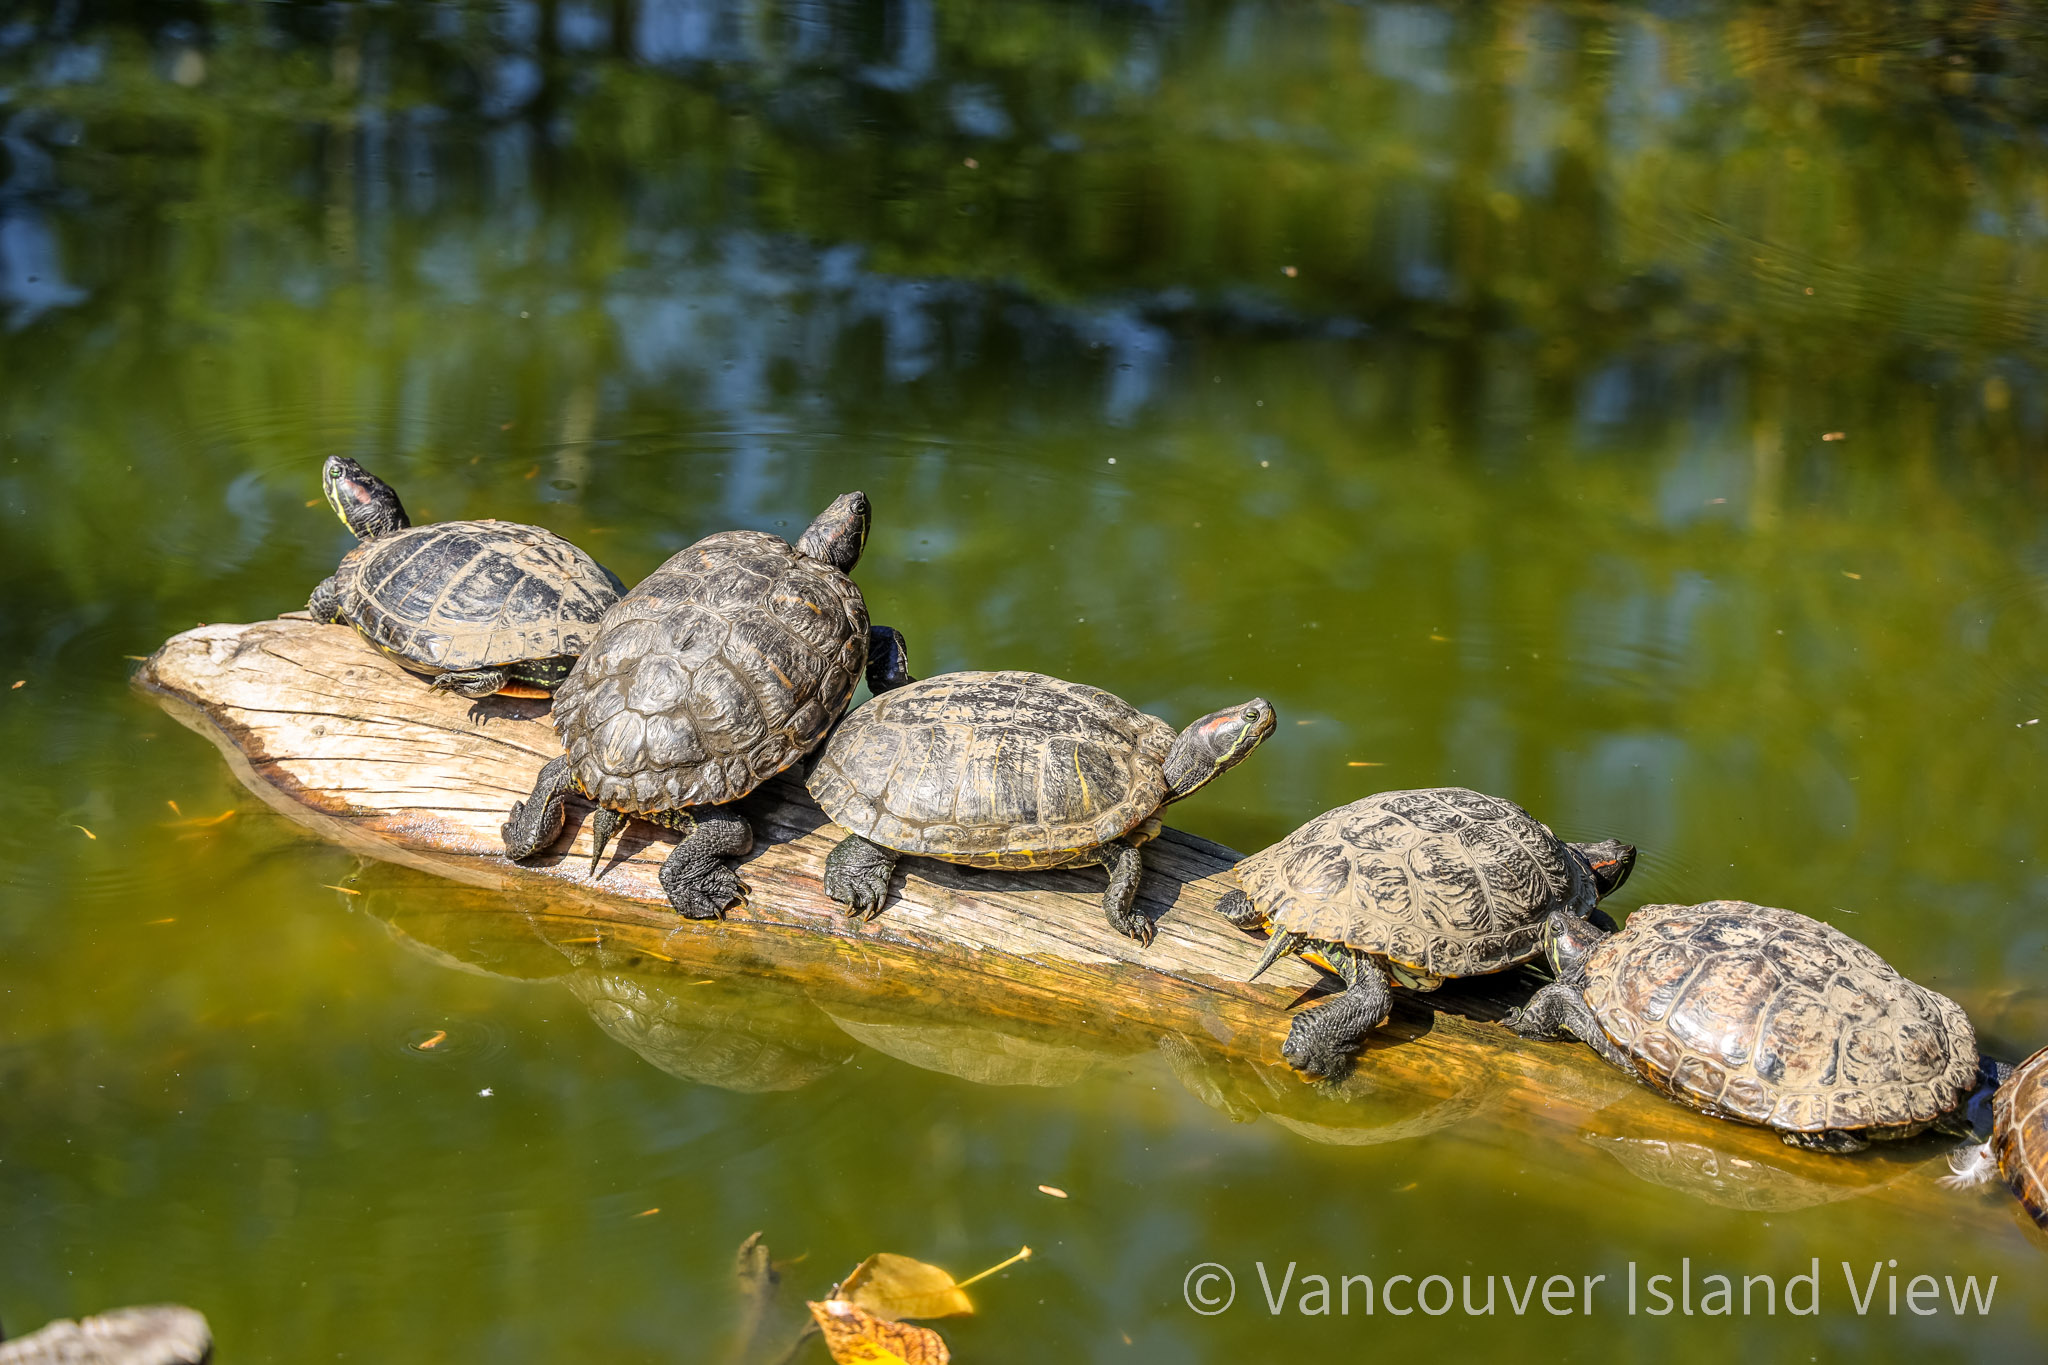 Turtles at the Wildlife Recovery Centre on Vancouver Island. Vancouver Island View